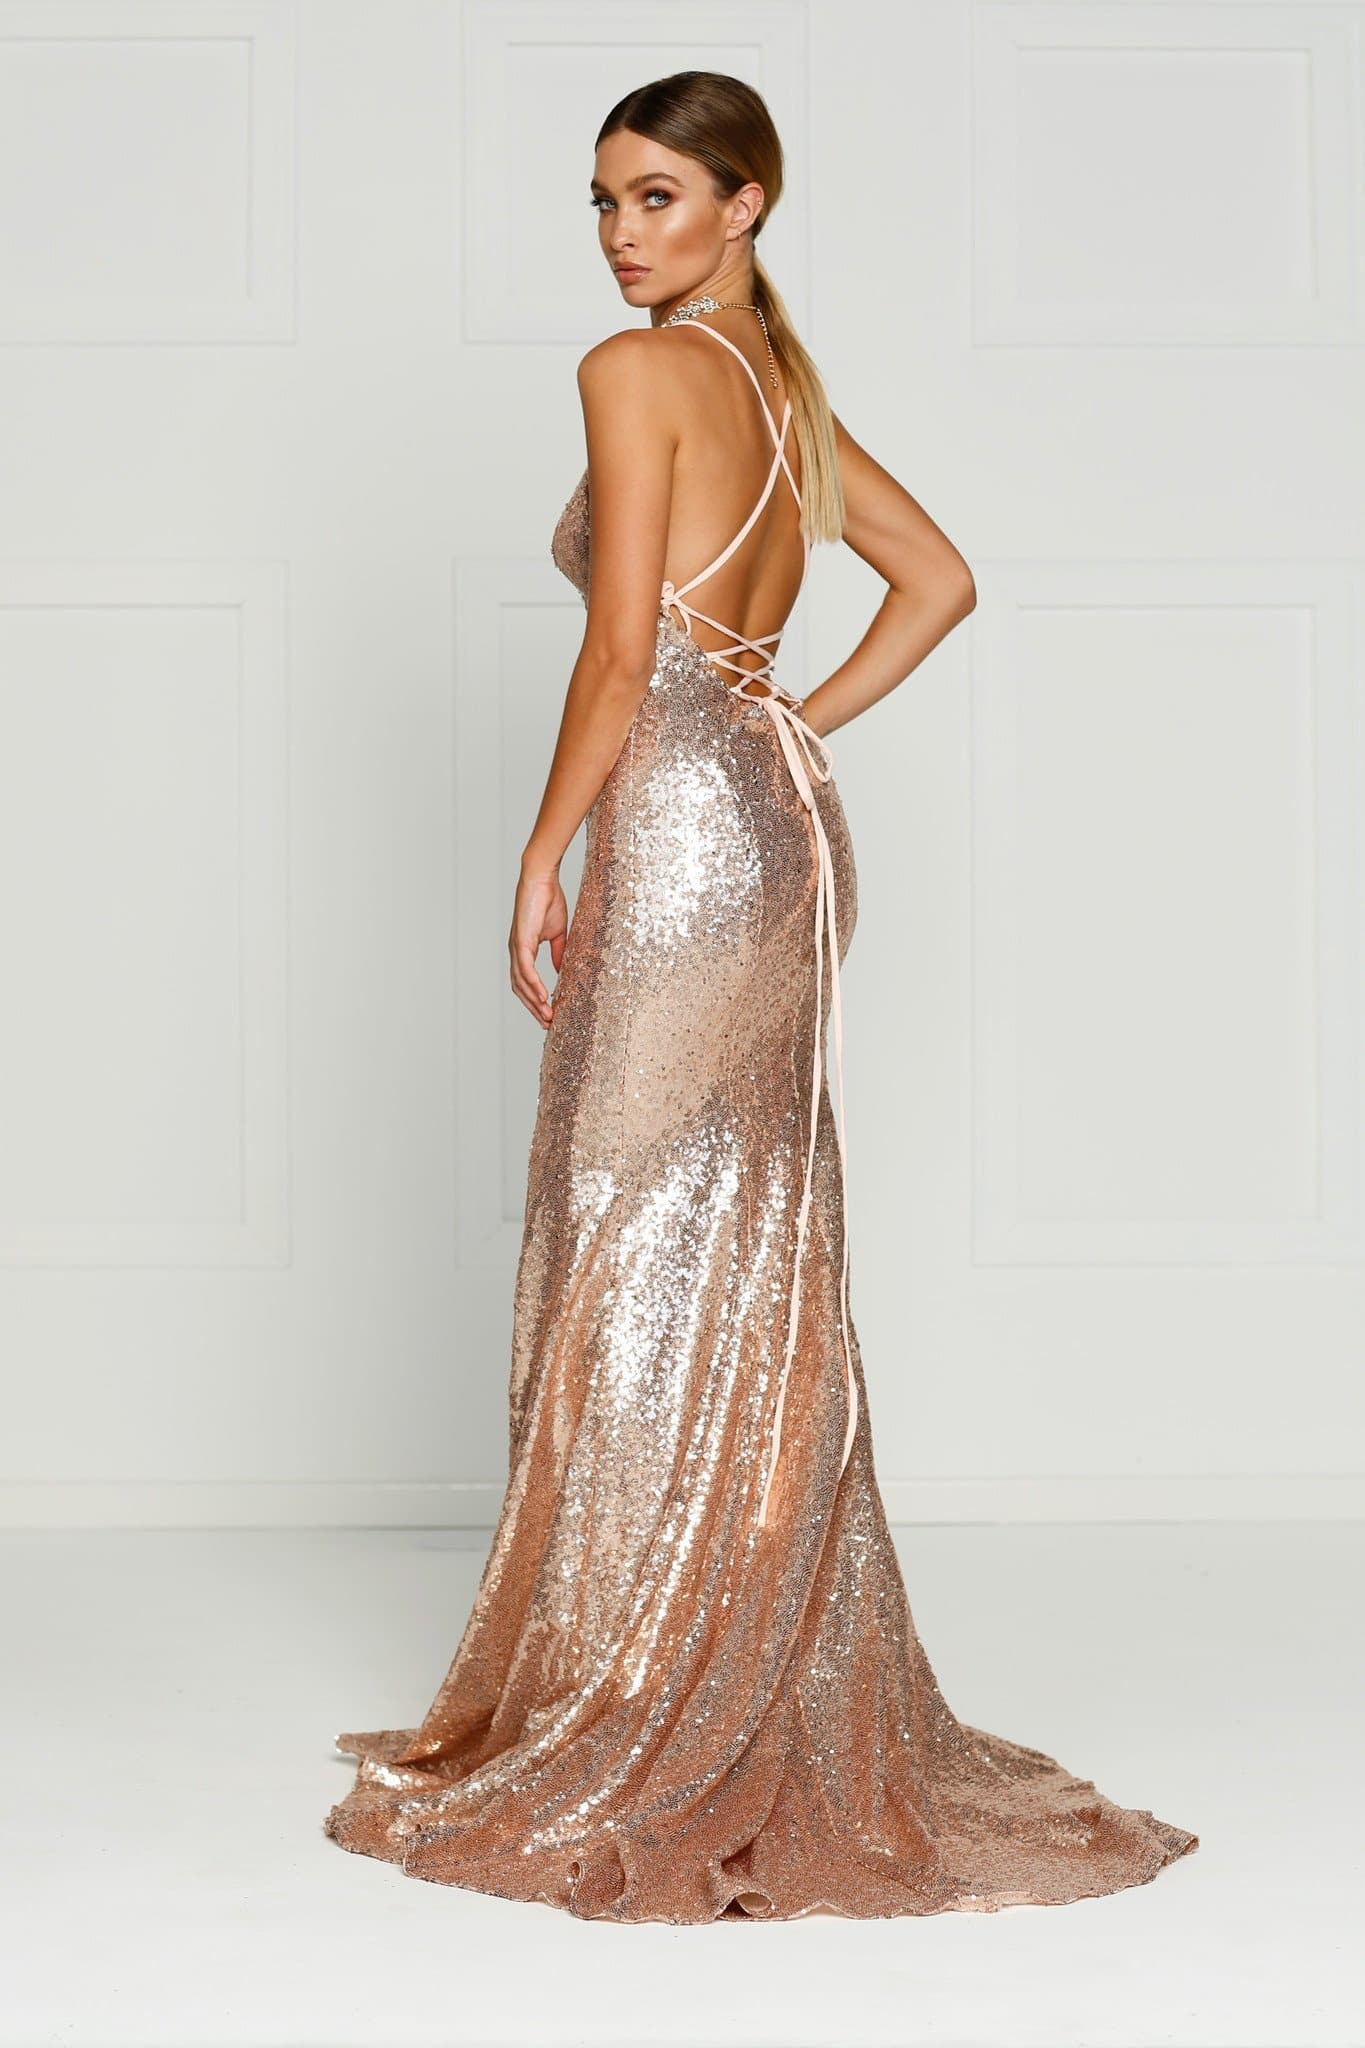 A&N Kendall - Rose Gold Sequin Dress with Criss Cross Back – A&N ...